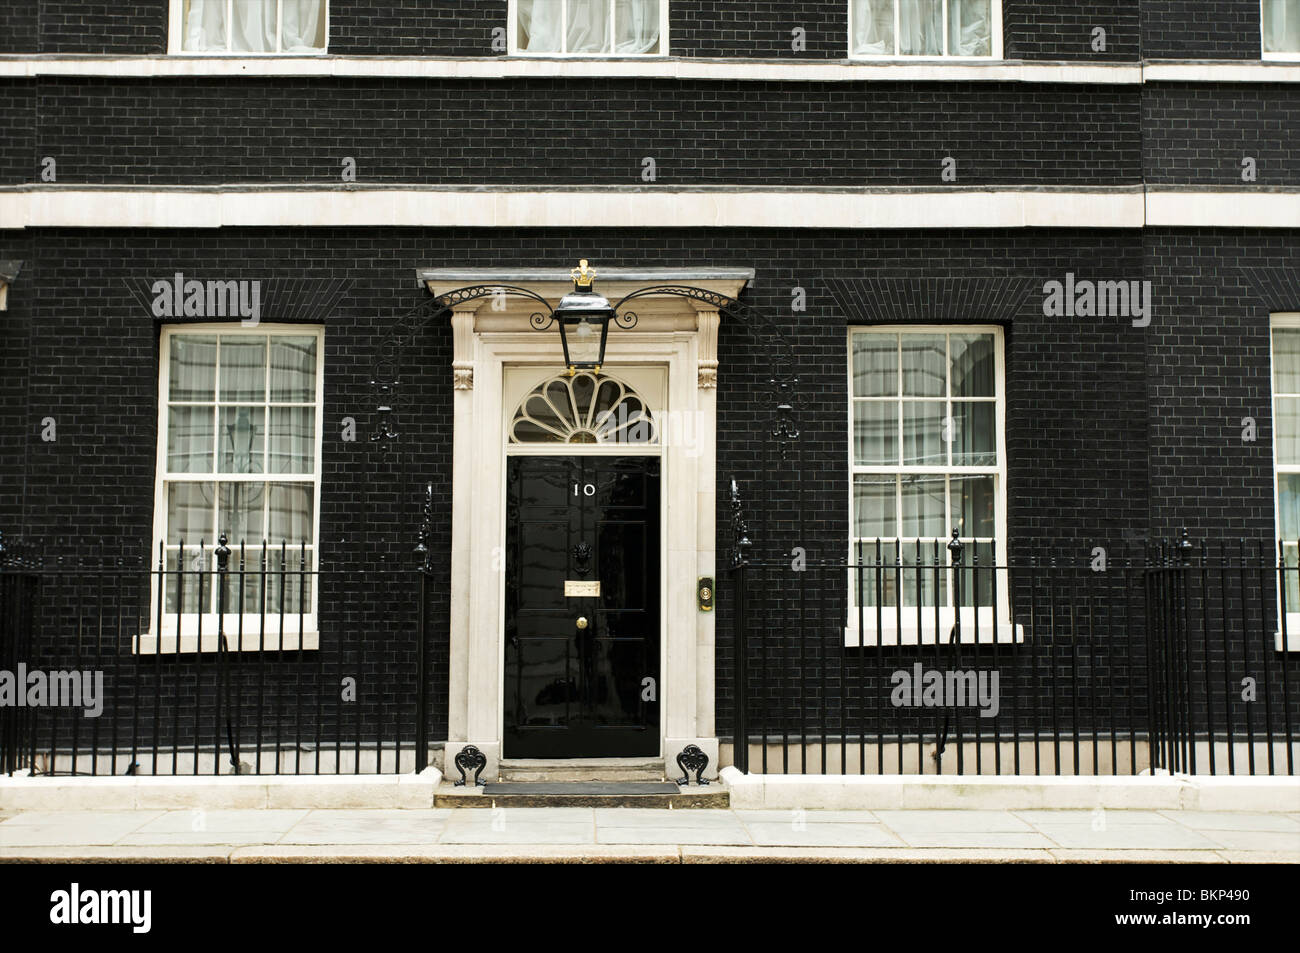 10 Downing Street, London, Prime minister residence - Stock Image